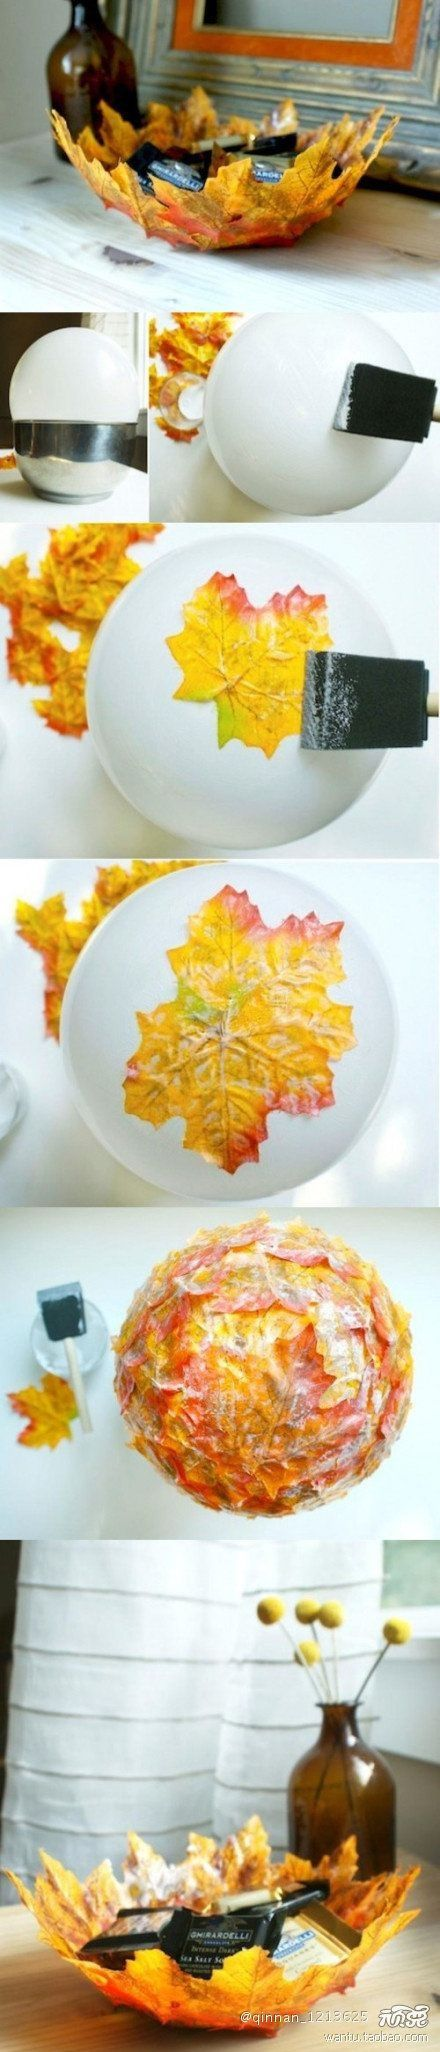 Maple leaf bowls. Paper mâché. Tutorial. Great idea for a fall wedding. DIY. Balloon. Glue. Gold, yellow, orange, and red leaves.